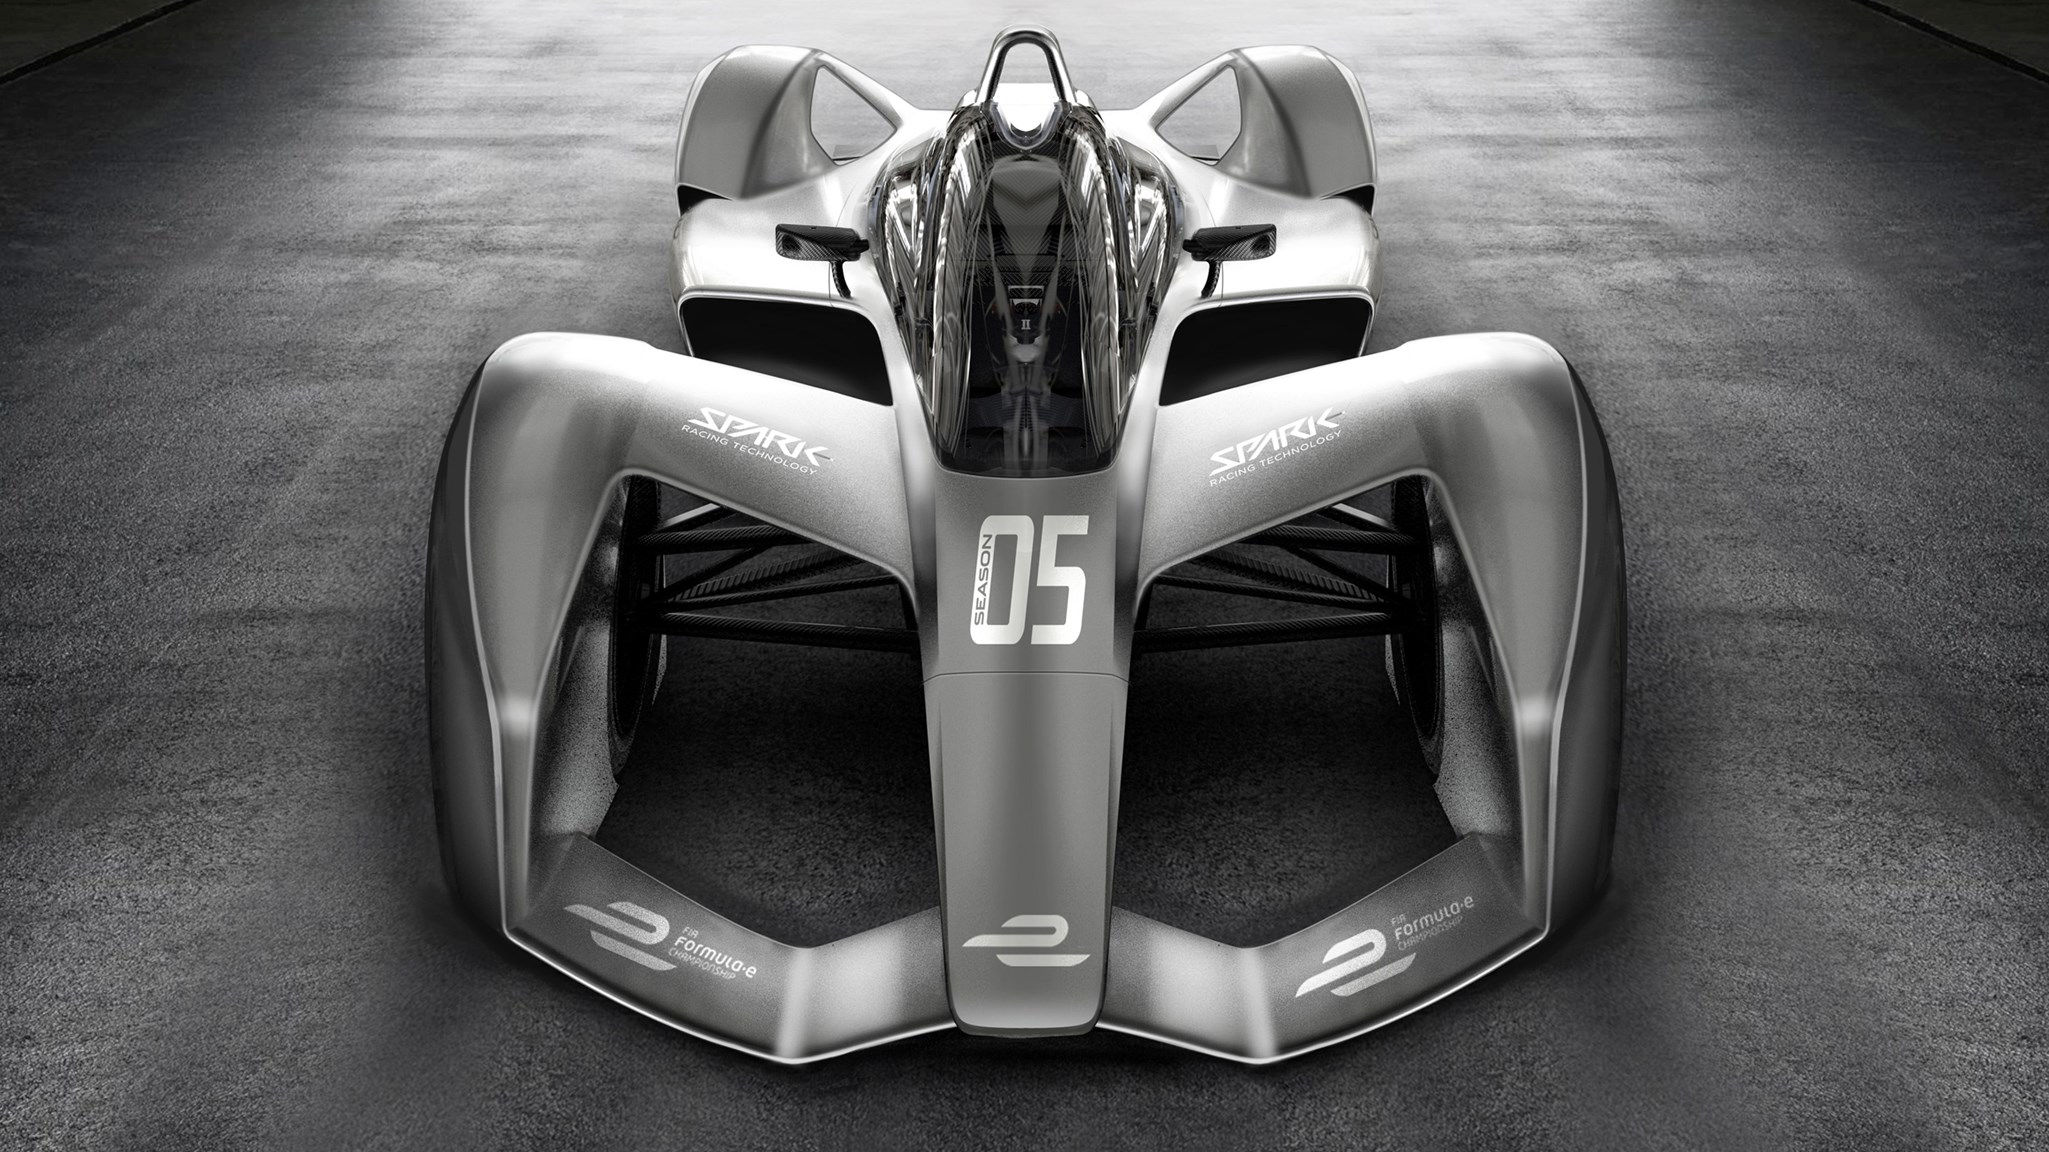 The New 2017 Formula E Racer